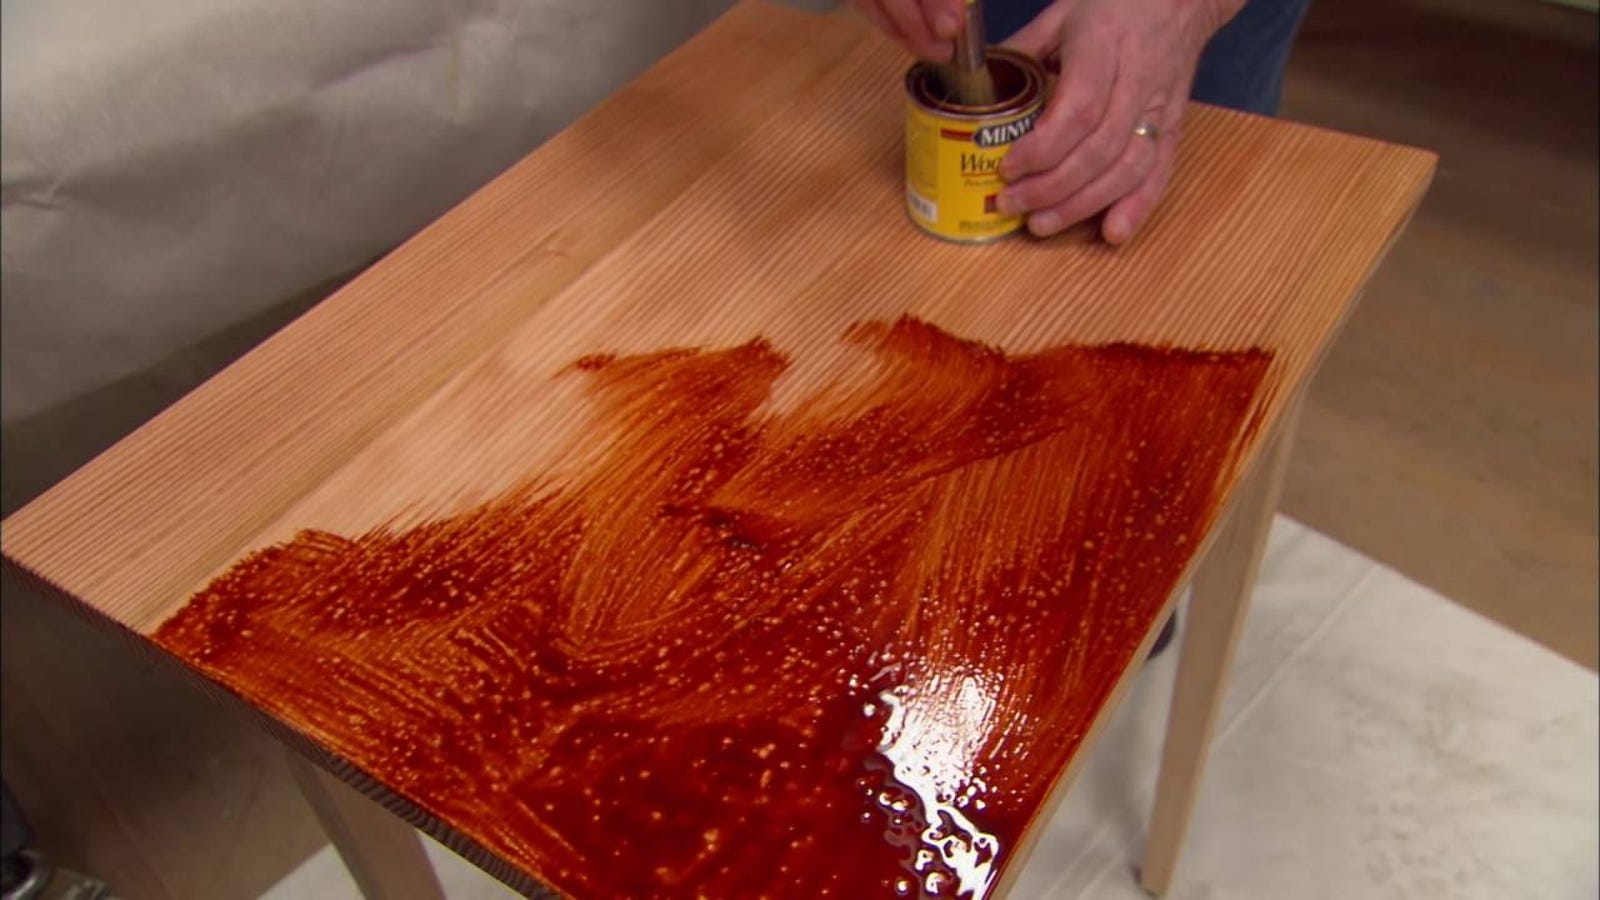 The Proper Way to Finish Surfacing Wood Furniture